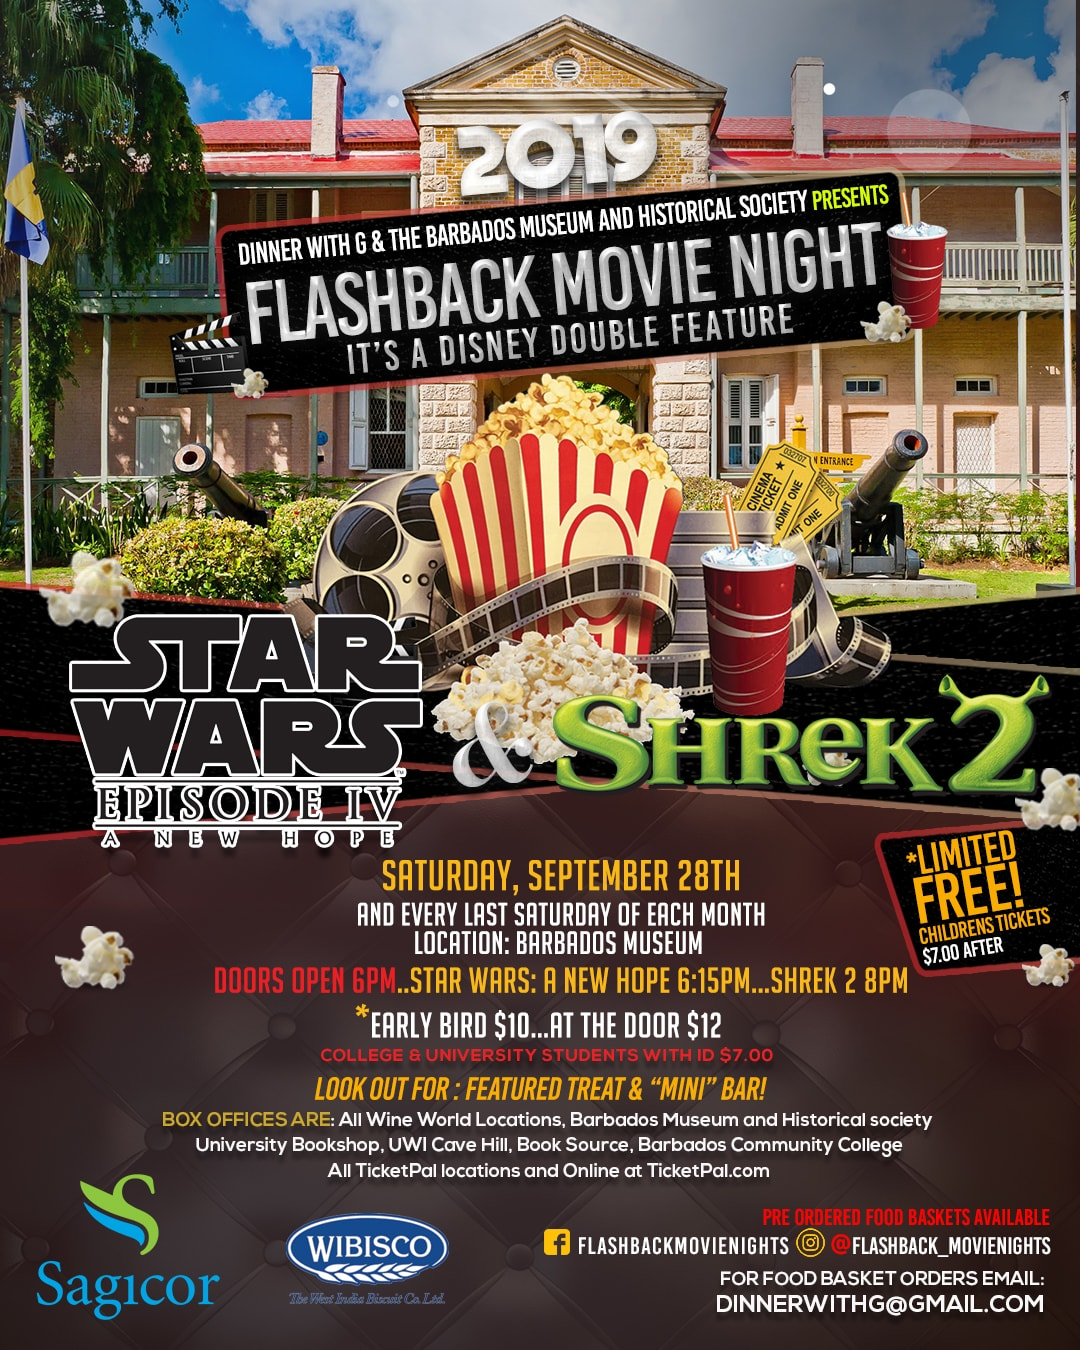 Flashback Movie - Star Wars: A New Hope 1977 & Shrek 2